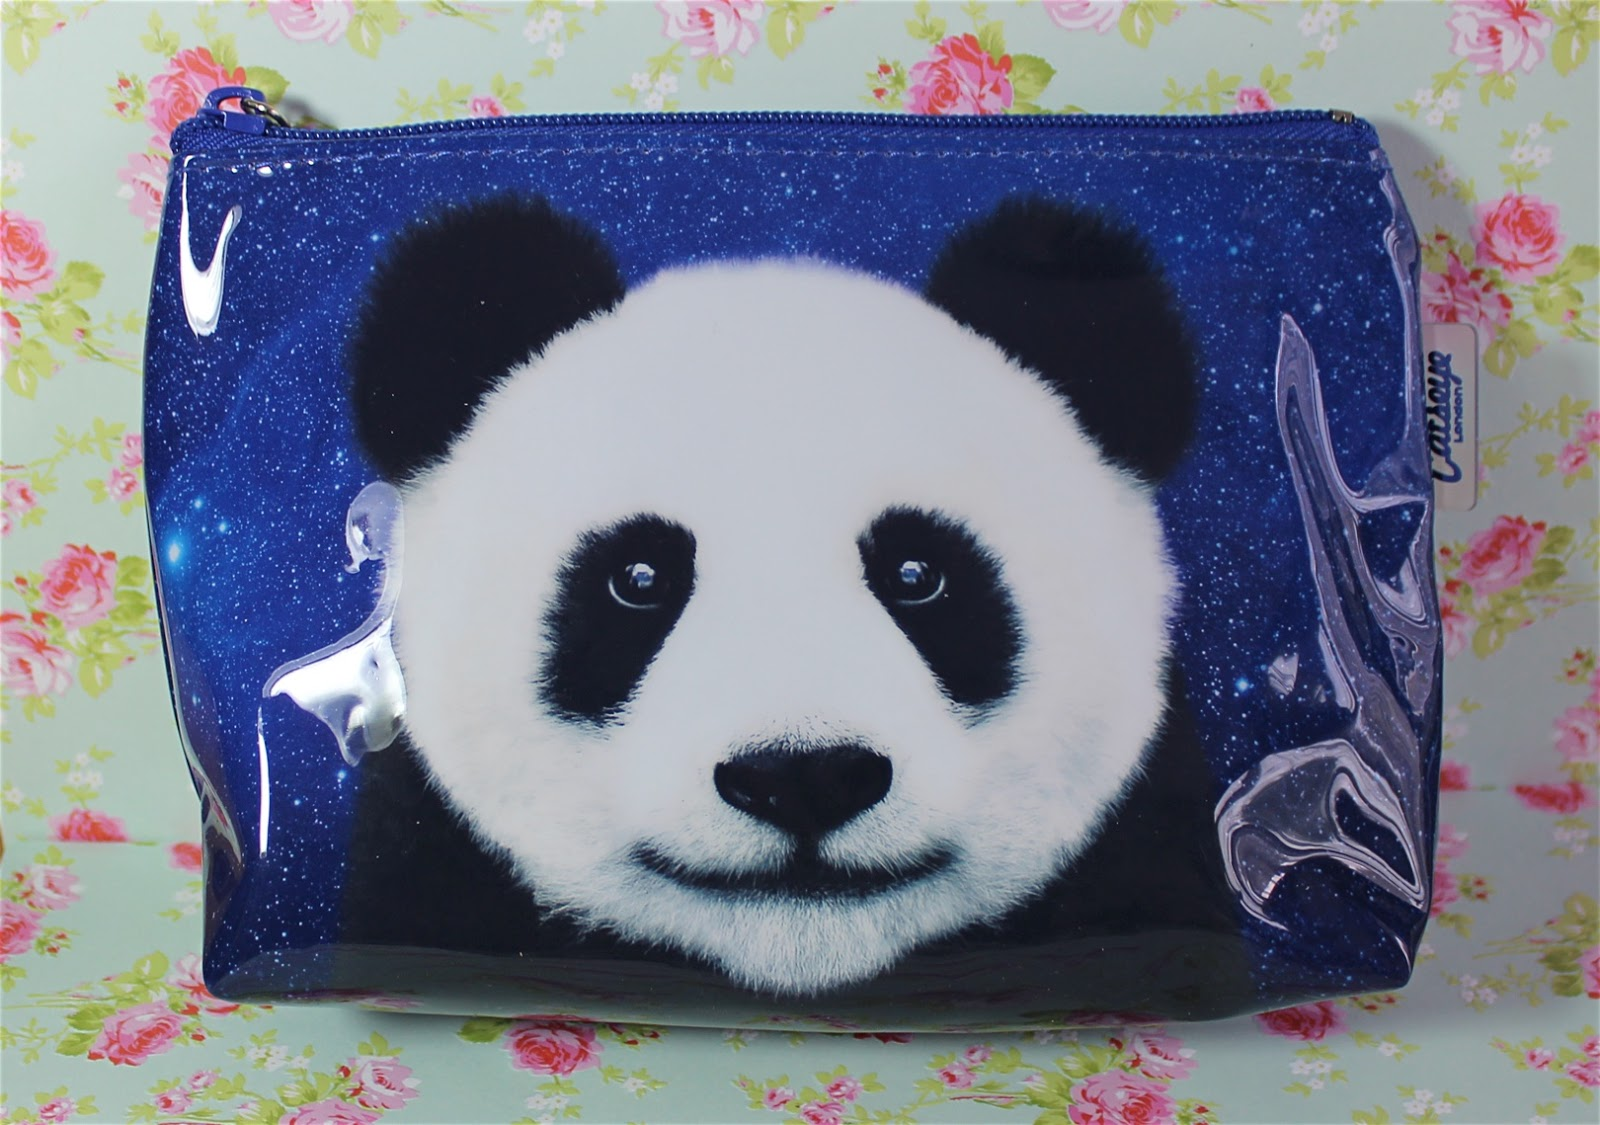 catseye london panda at night makeup bag